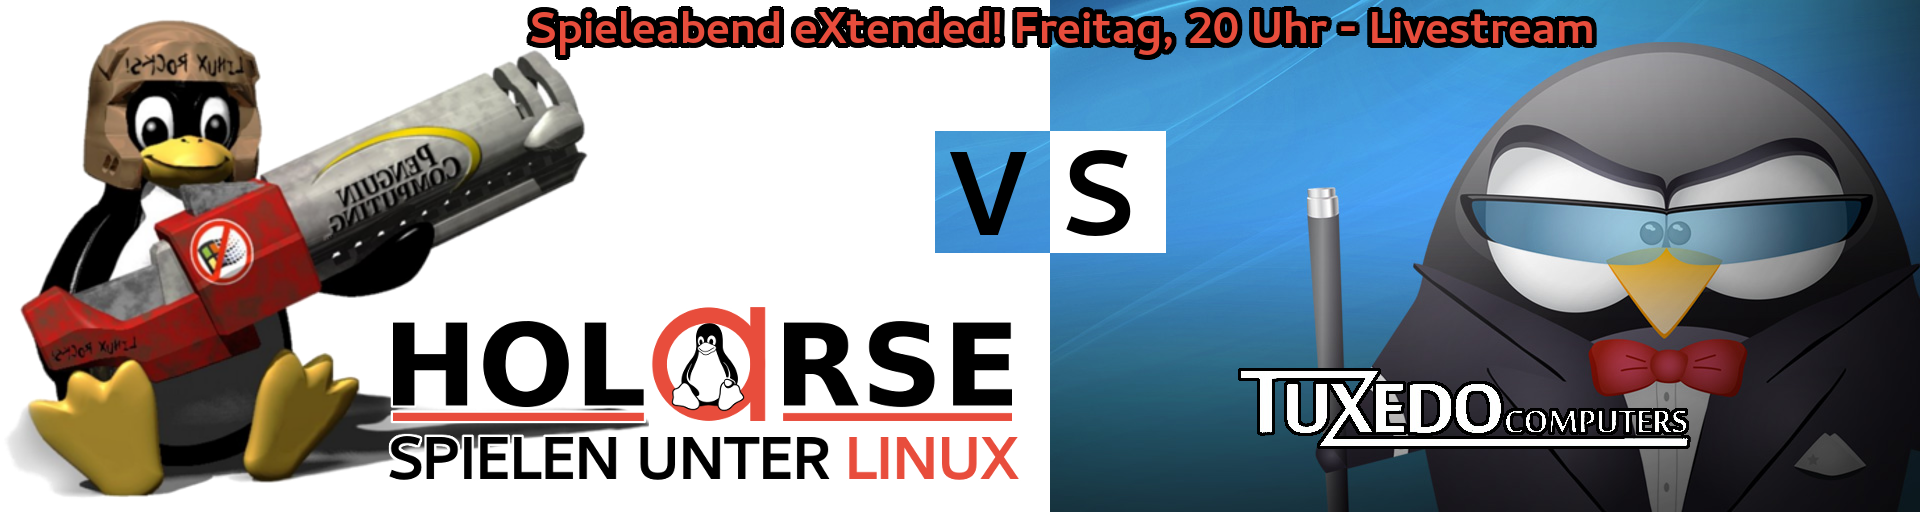 https://www.holarse-linuxgaming.de/sites/default/files/2017-09-13-1/Spieleabend%20extended.png